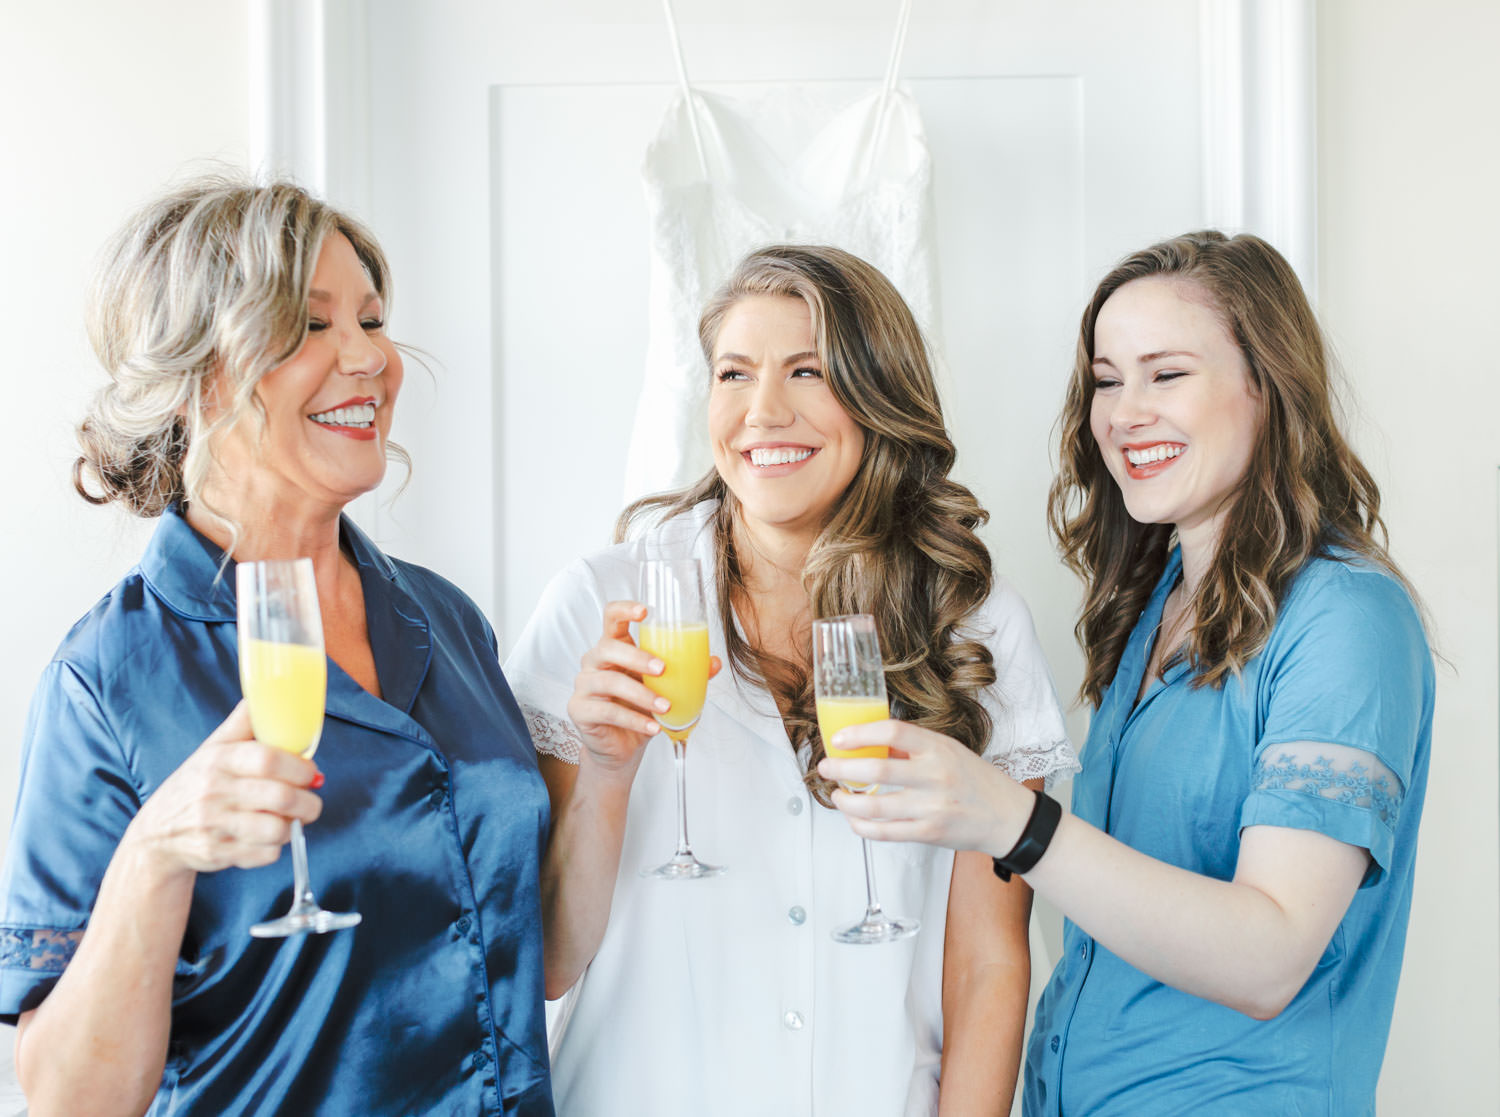 Bride with mother and maid of honor drinking mimosas in robes laughing, Intimate Wedding at La Valencia Hotel in La Jolla by Cavin Elizabeth Photography